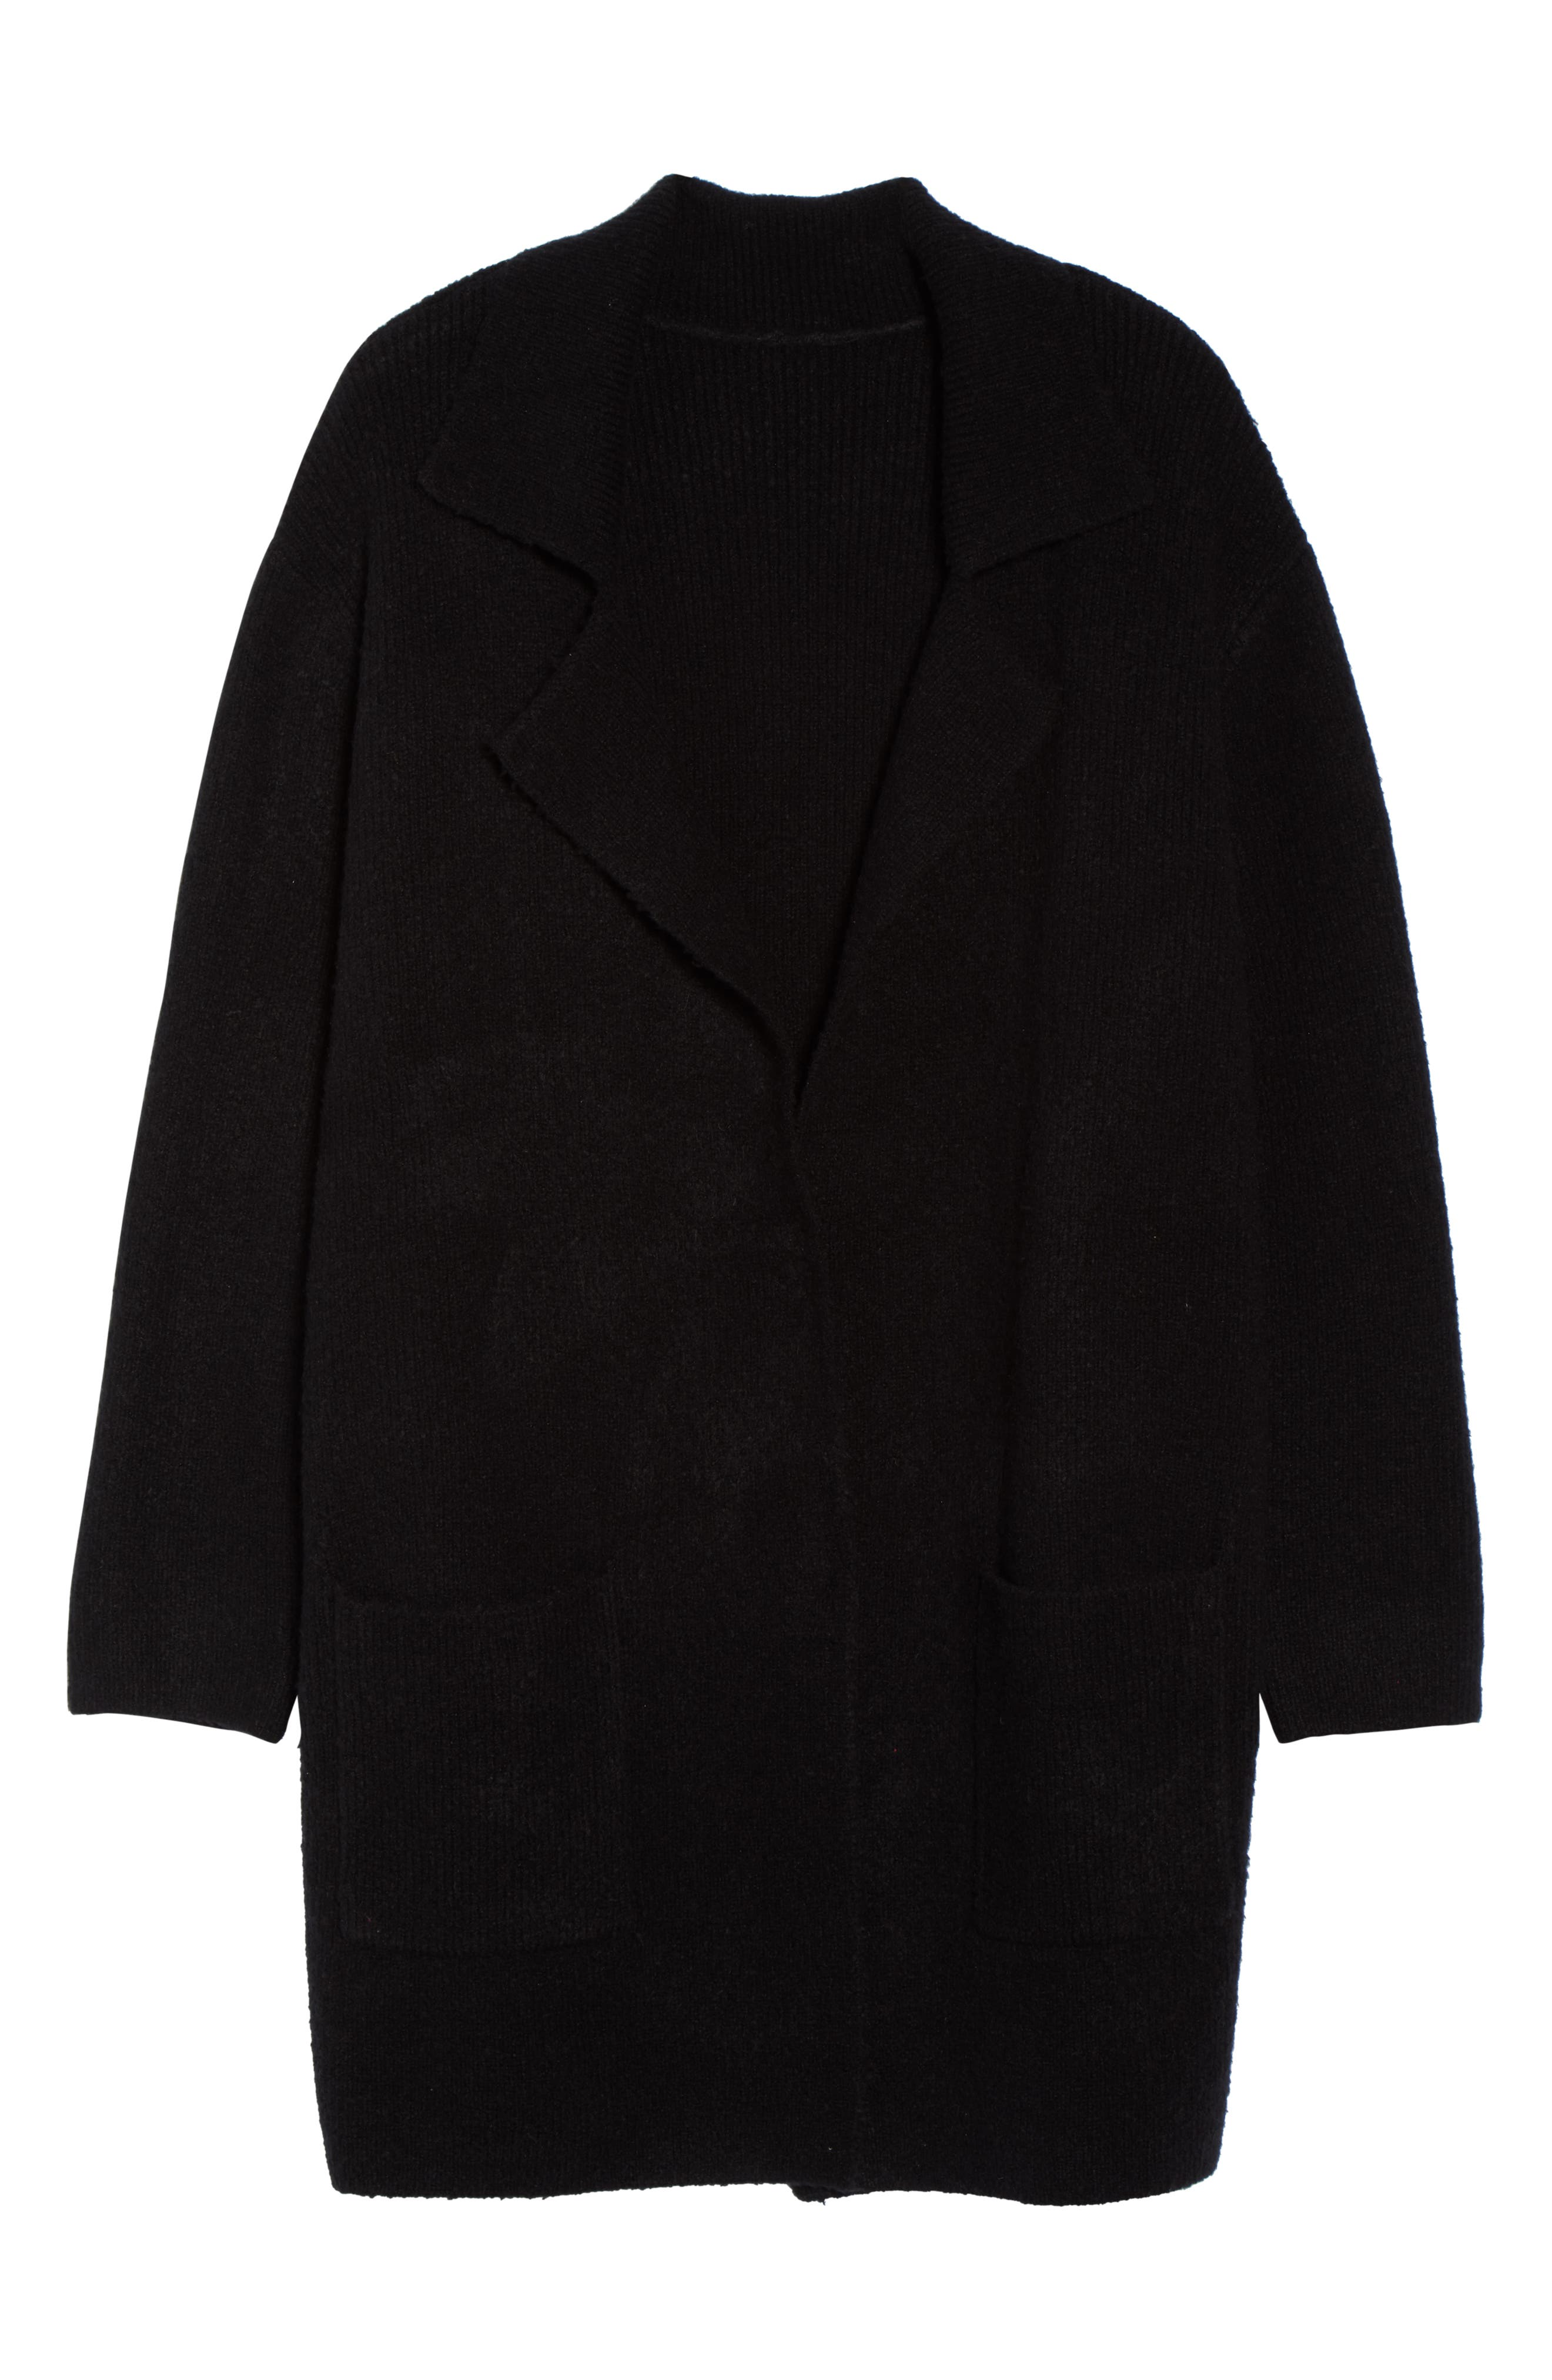 Sweater Coat,                             Alternate thumbnail 6, color,                             BLACK